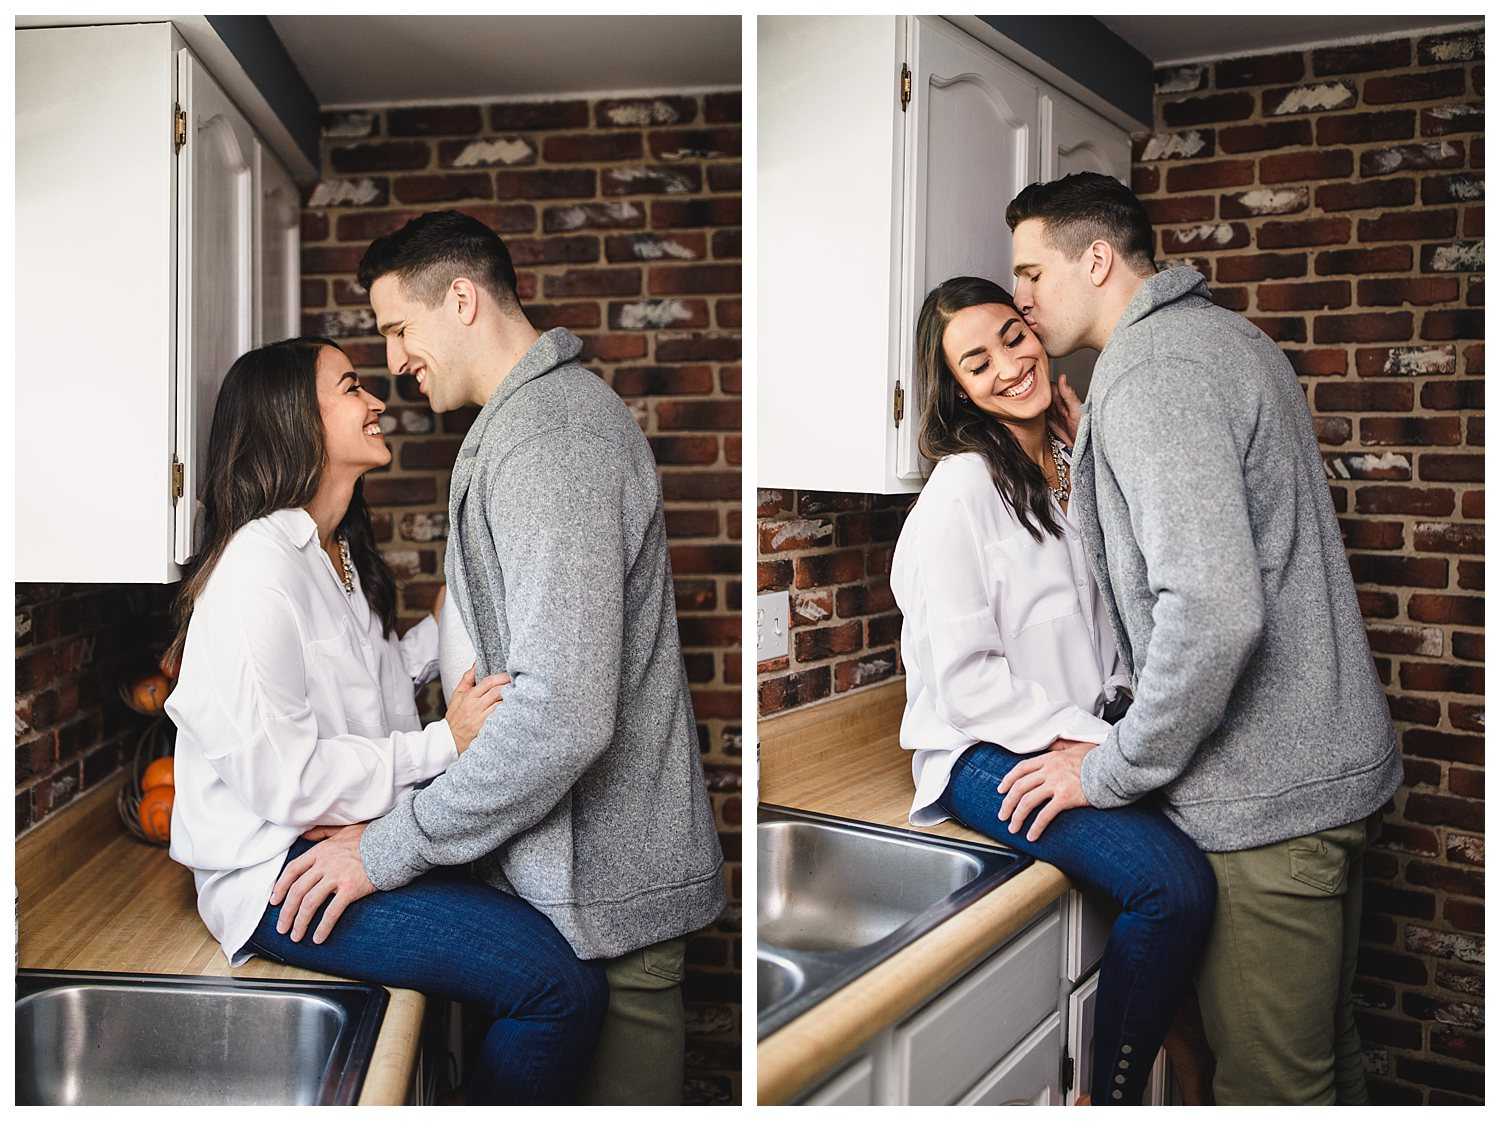 Kansas_City_Wedding_Photographer_Engagement_Kelsey_Diane_Photography_Midwest_Traveling_In_home_engagement_Session_Cassie_Austin_Parkville_Missouri_0873.jpg